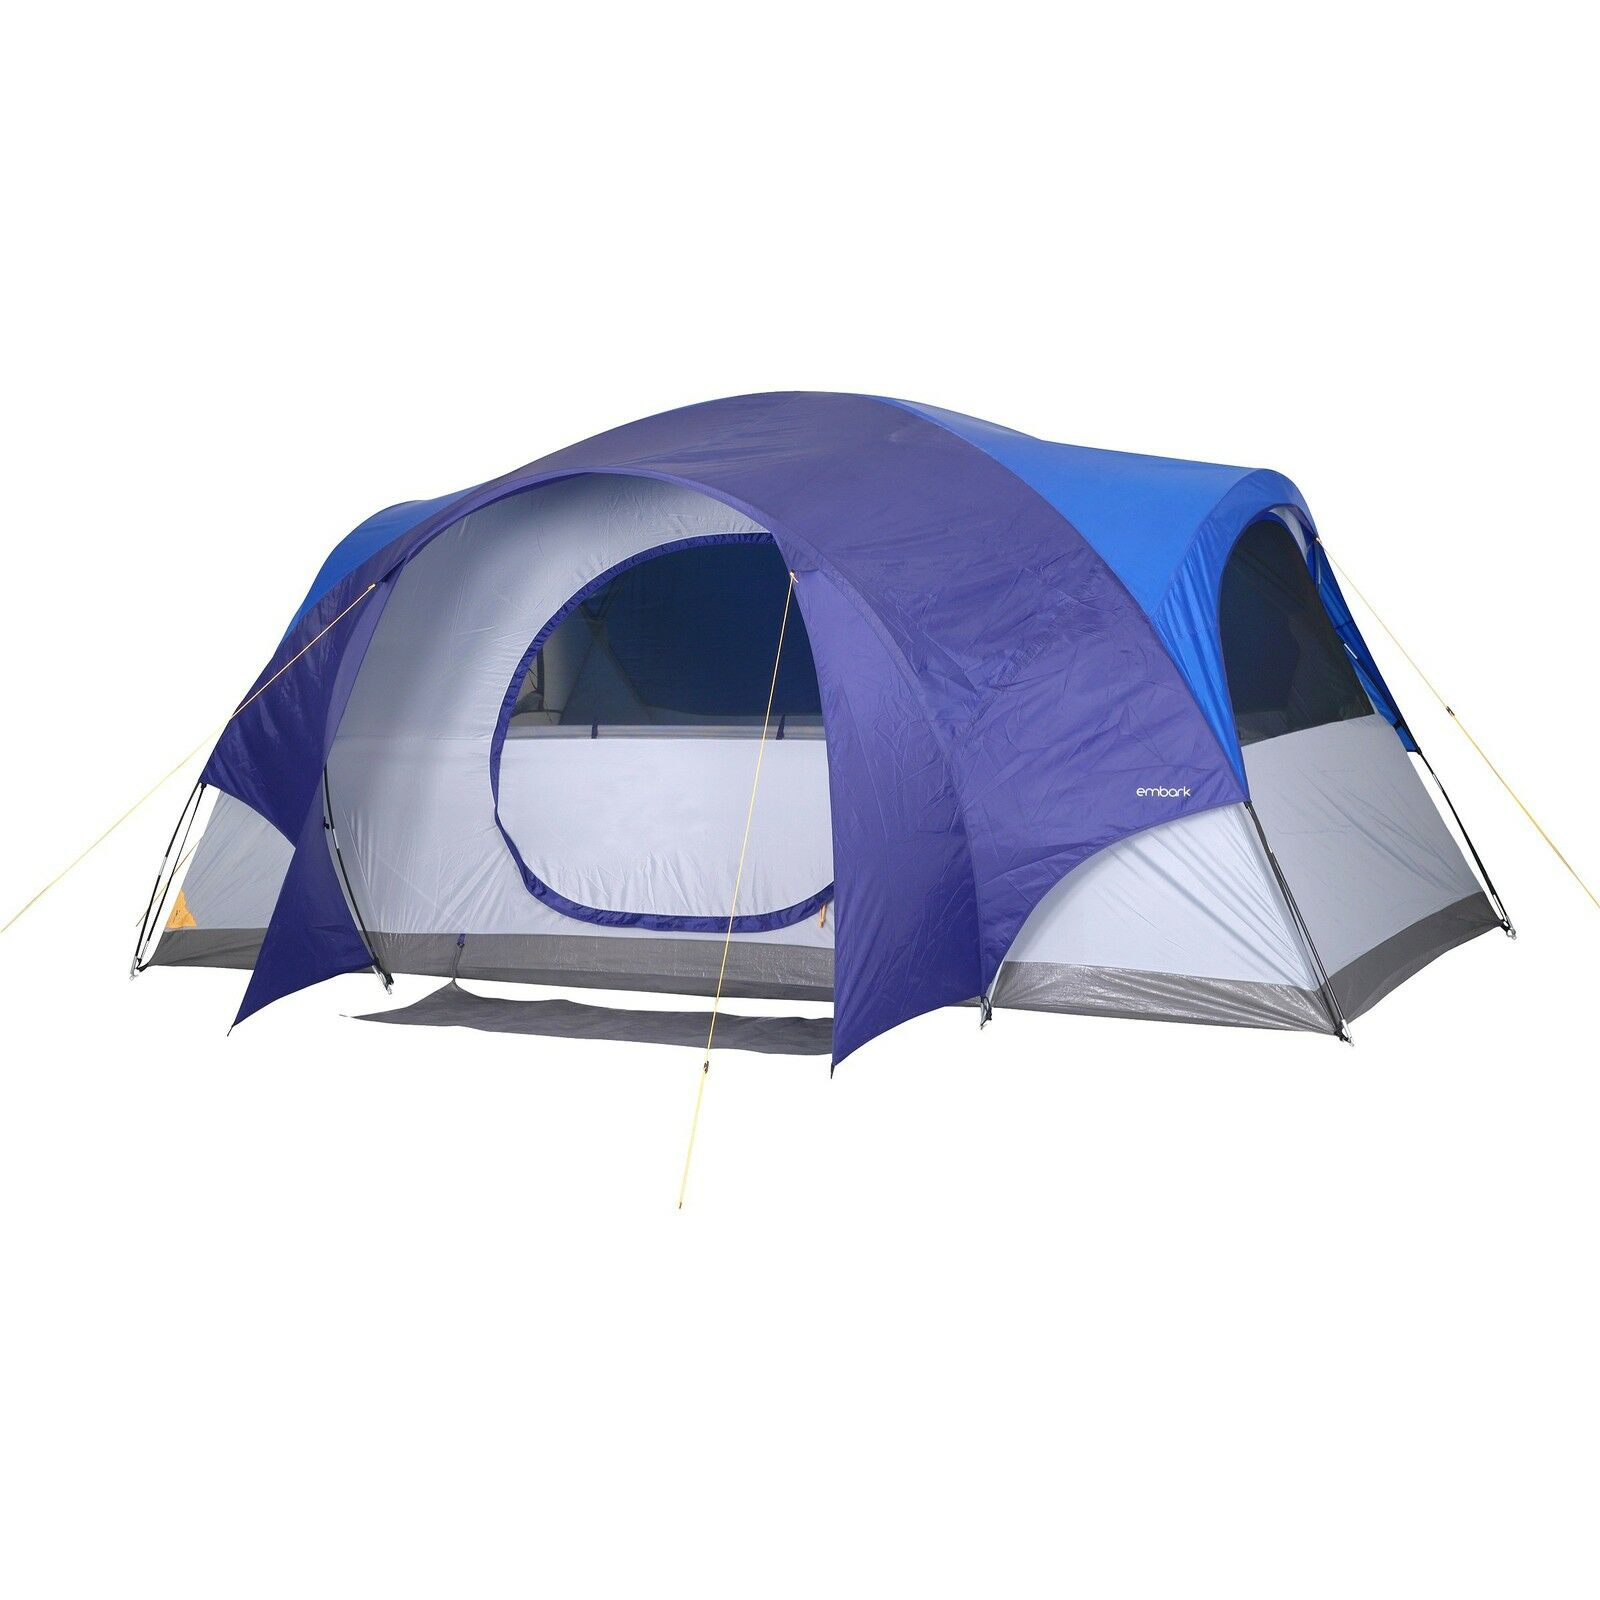 New EMBARK bluee 8 person Dome Tent - 14x8x78